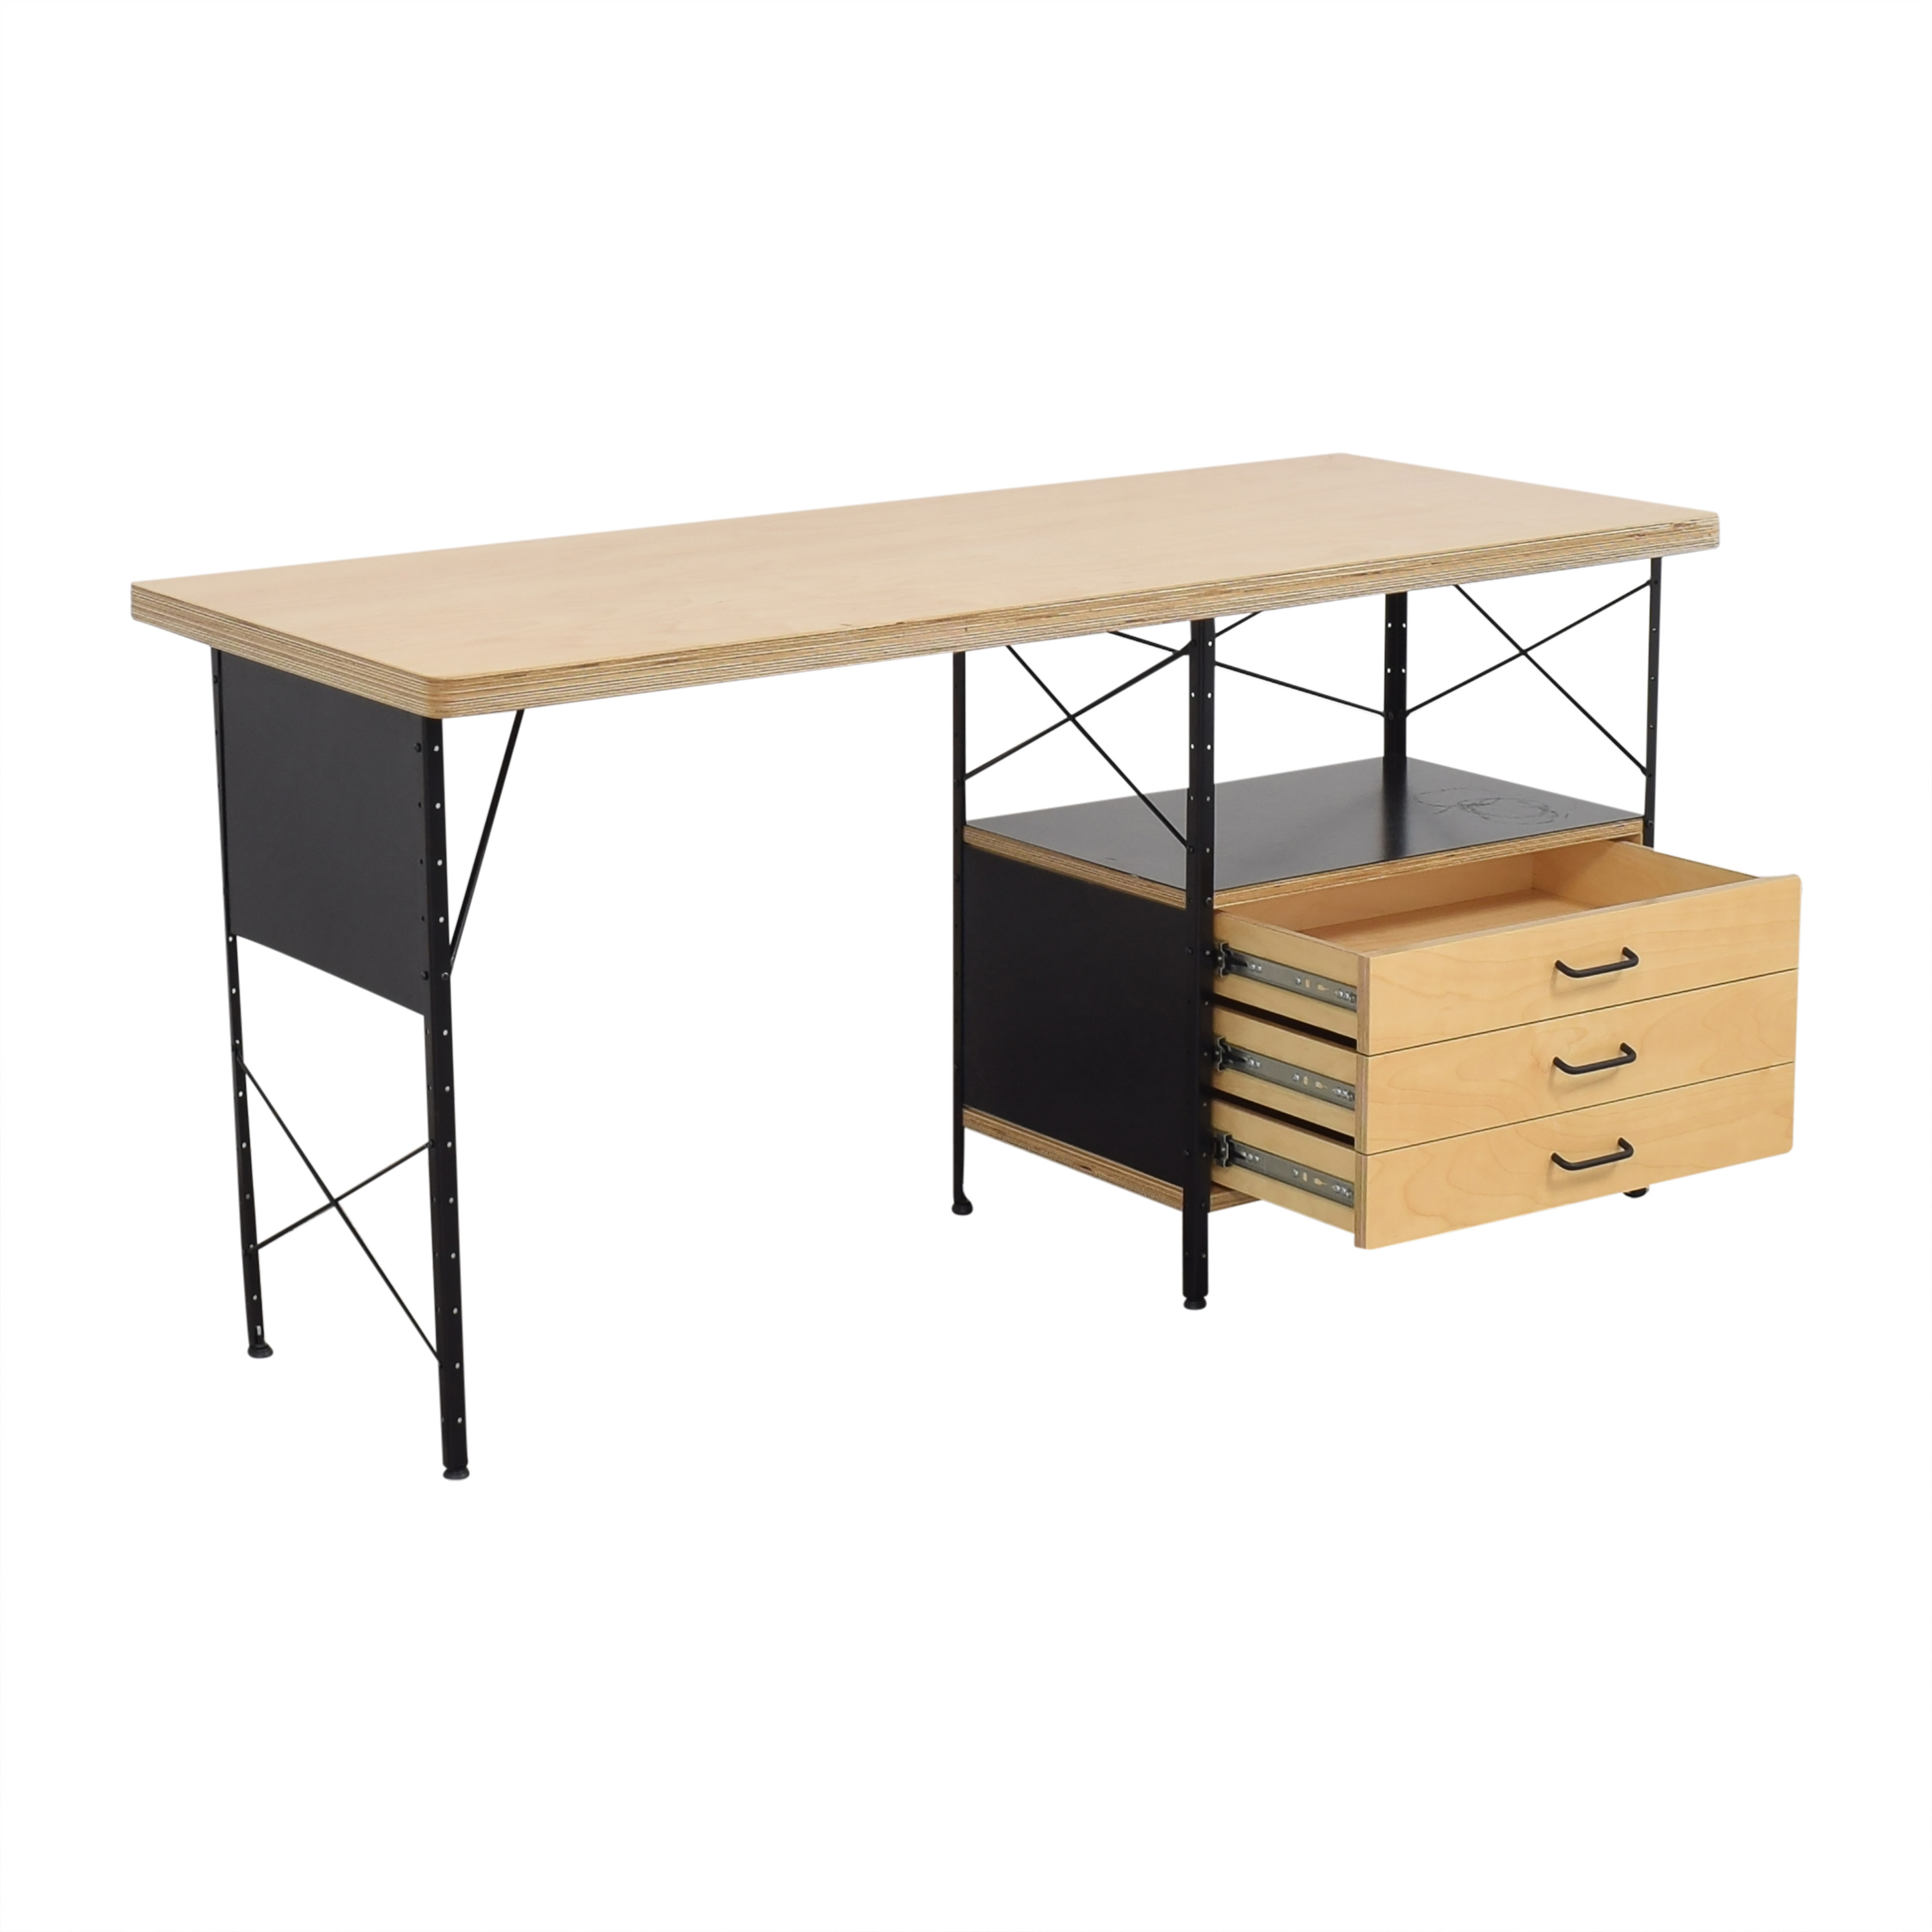 shop Modernica Modernica Case Study Furniture Desk with 3 Drawers online